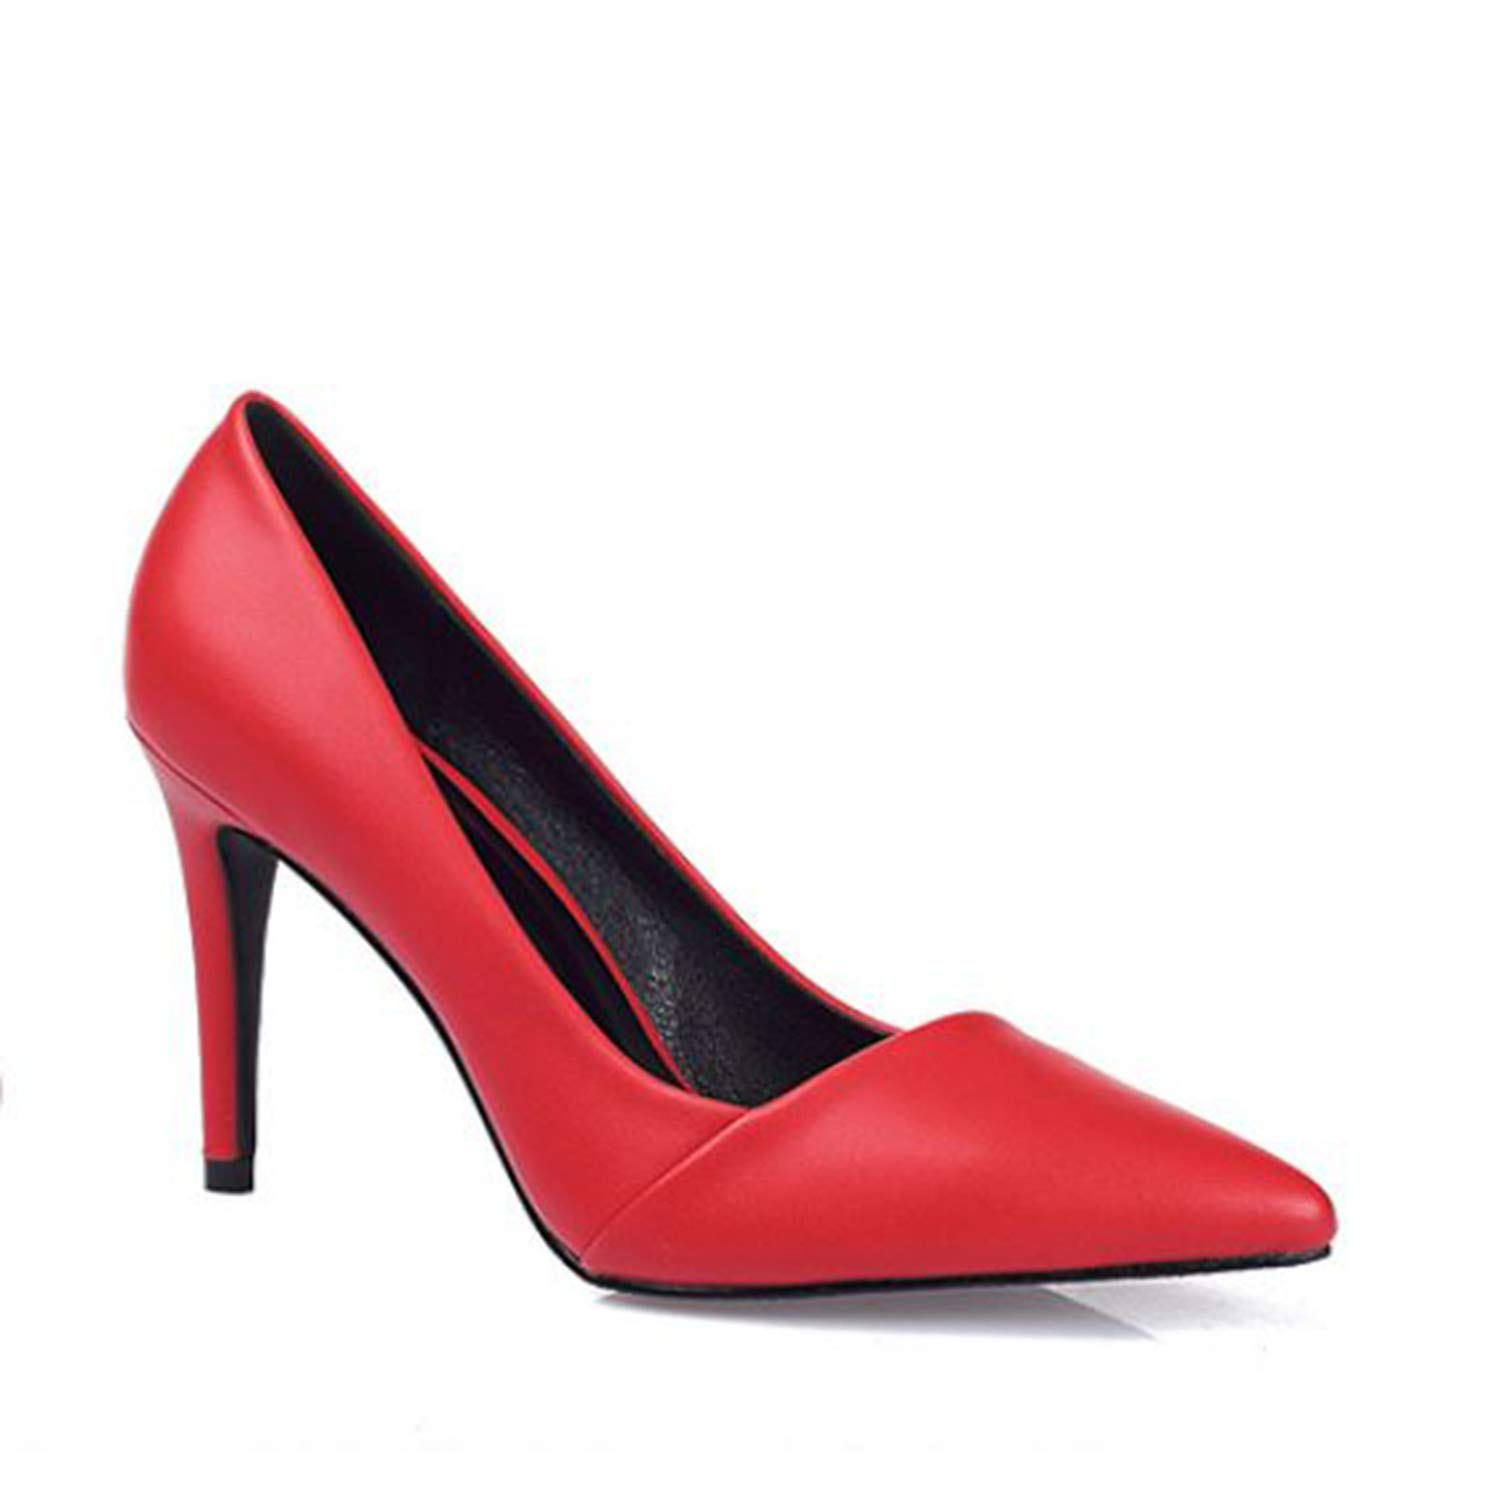 with Suede sub-sfoes Woman Shoes,5 cm high Heels,8 2019 Elegant New Pointed high-Heeled Shoes respectively 5CM 7CM 9CM high Heels